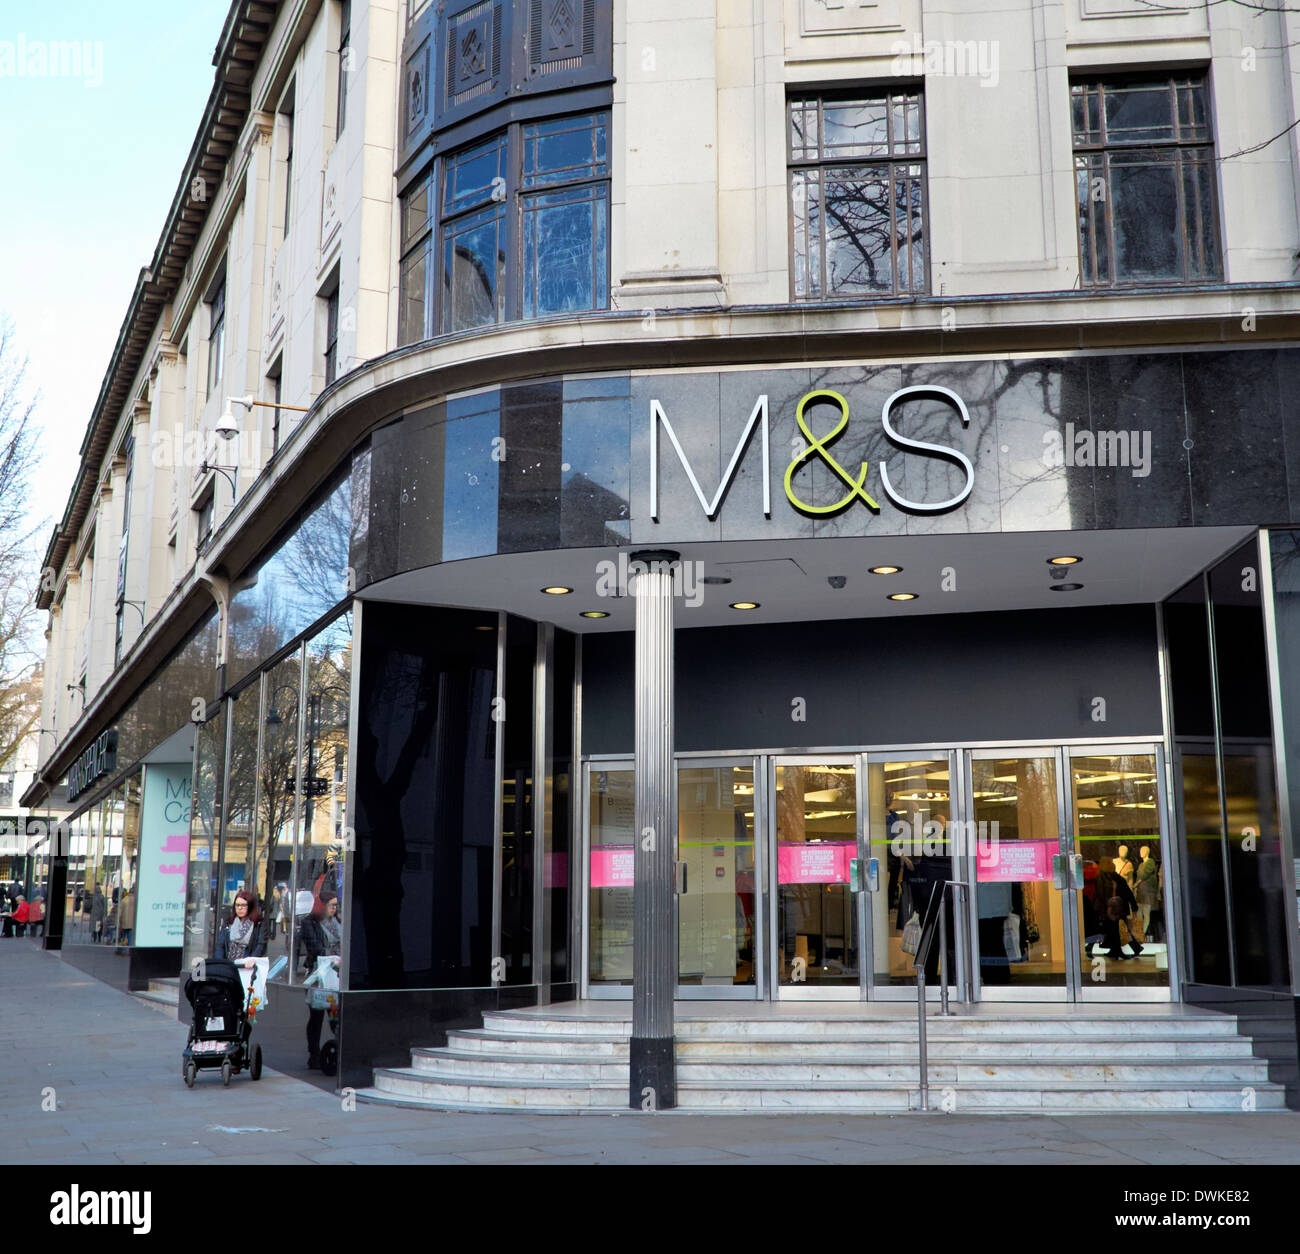 Marks and Spencer high street retailer shop front - Stock Image